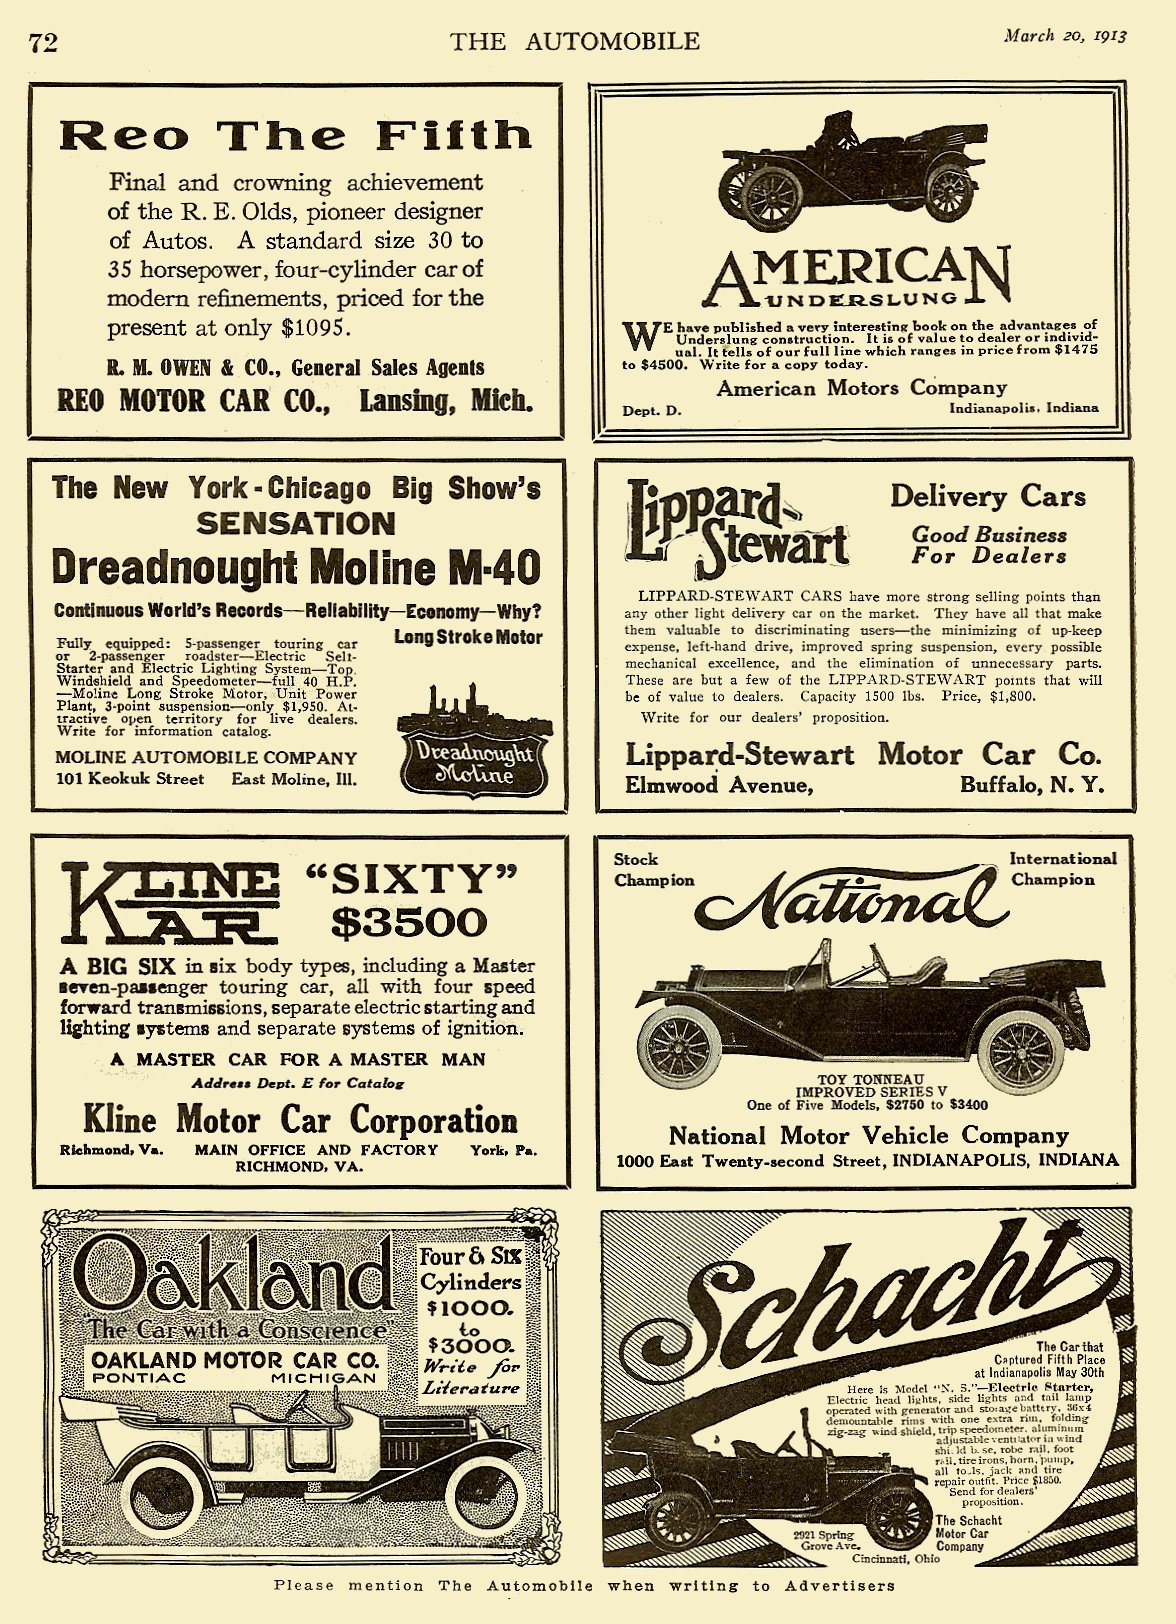 1913 3 20 NATIONAL THE AUTOMOBILE Vol. 28 No. 12 March 20, 1913 9″x12″ page 72